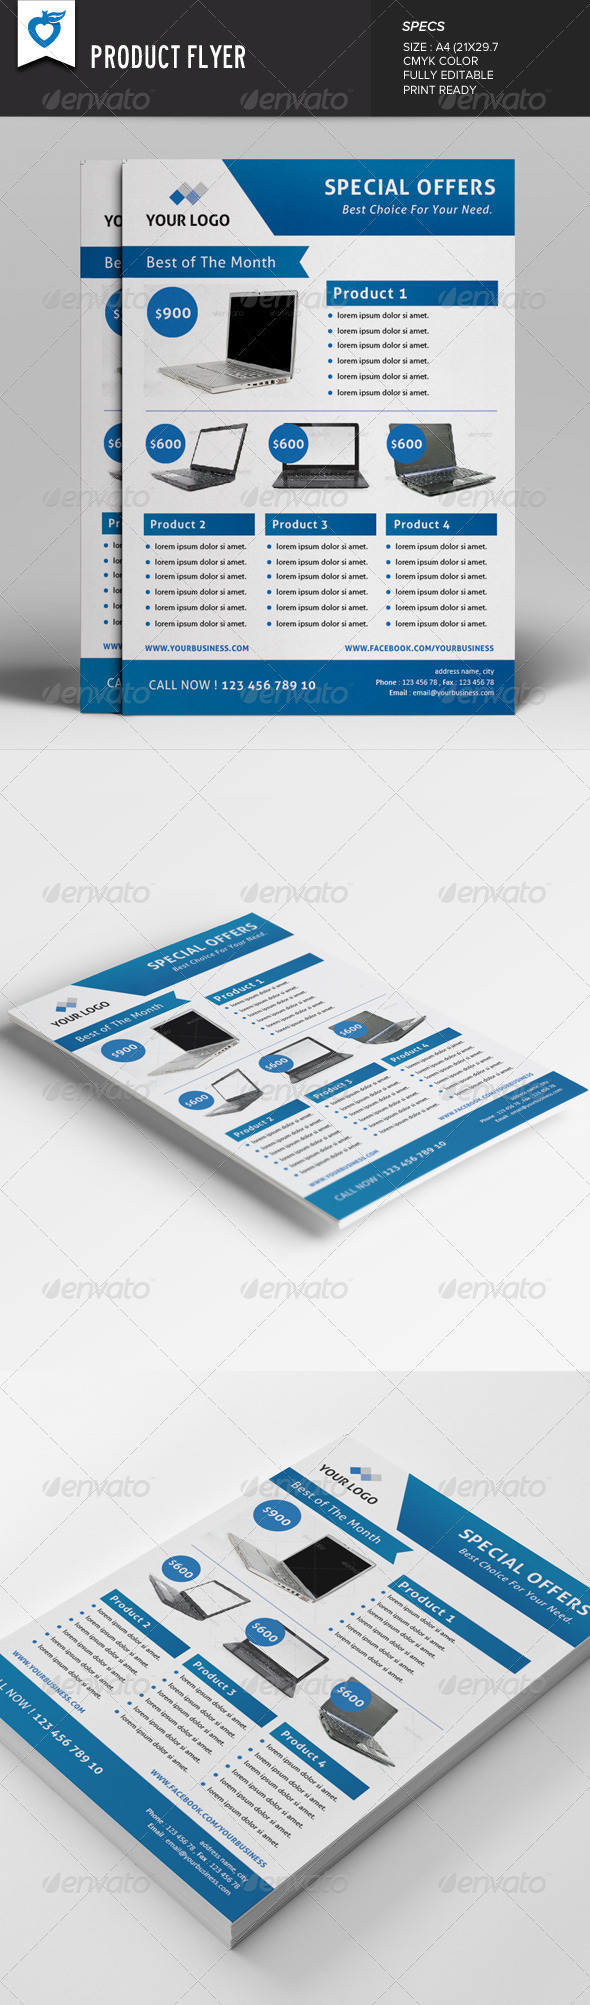 GraphicRiver Product Flyer v2 7811829